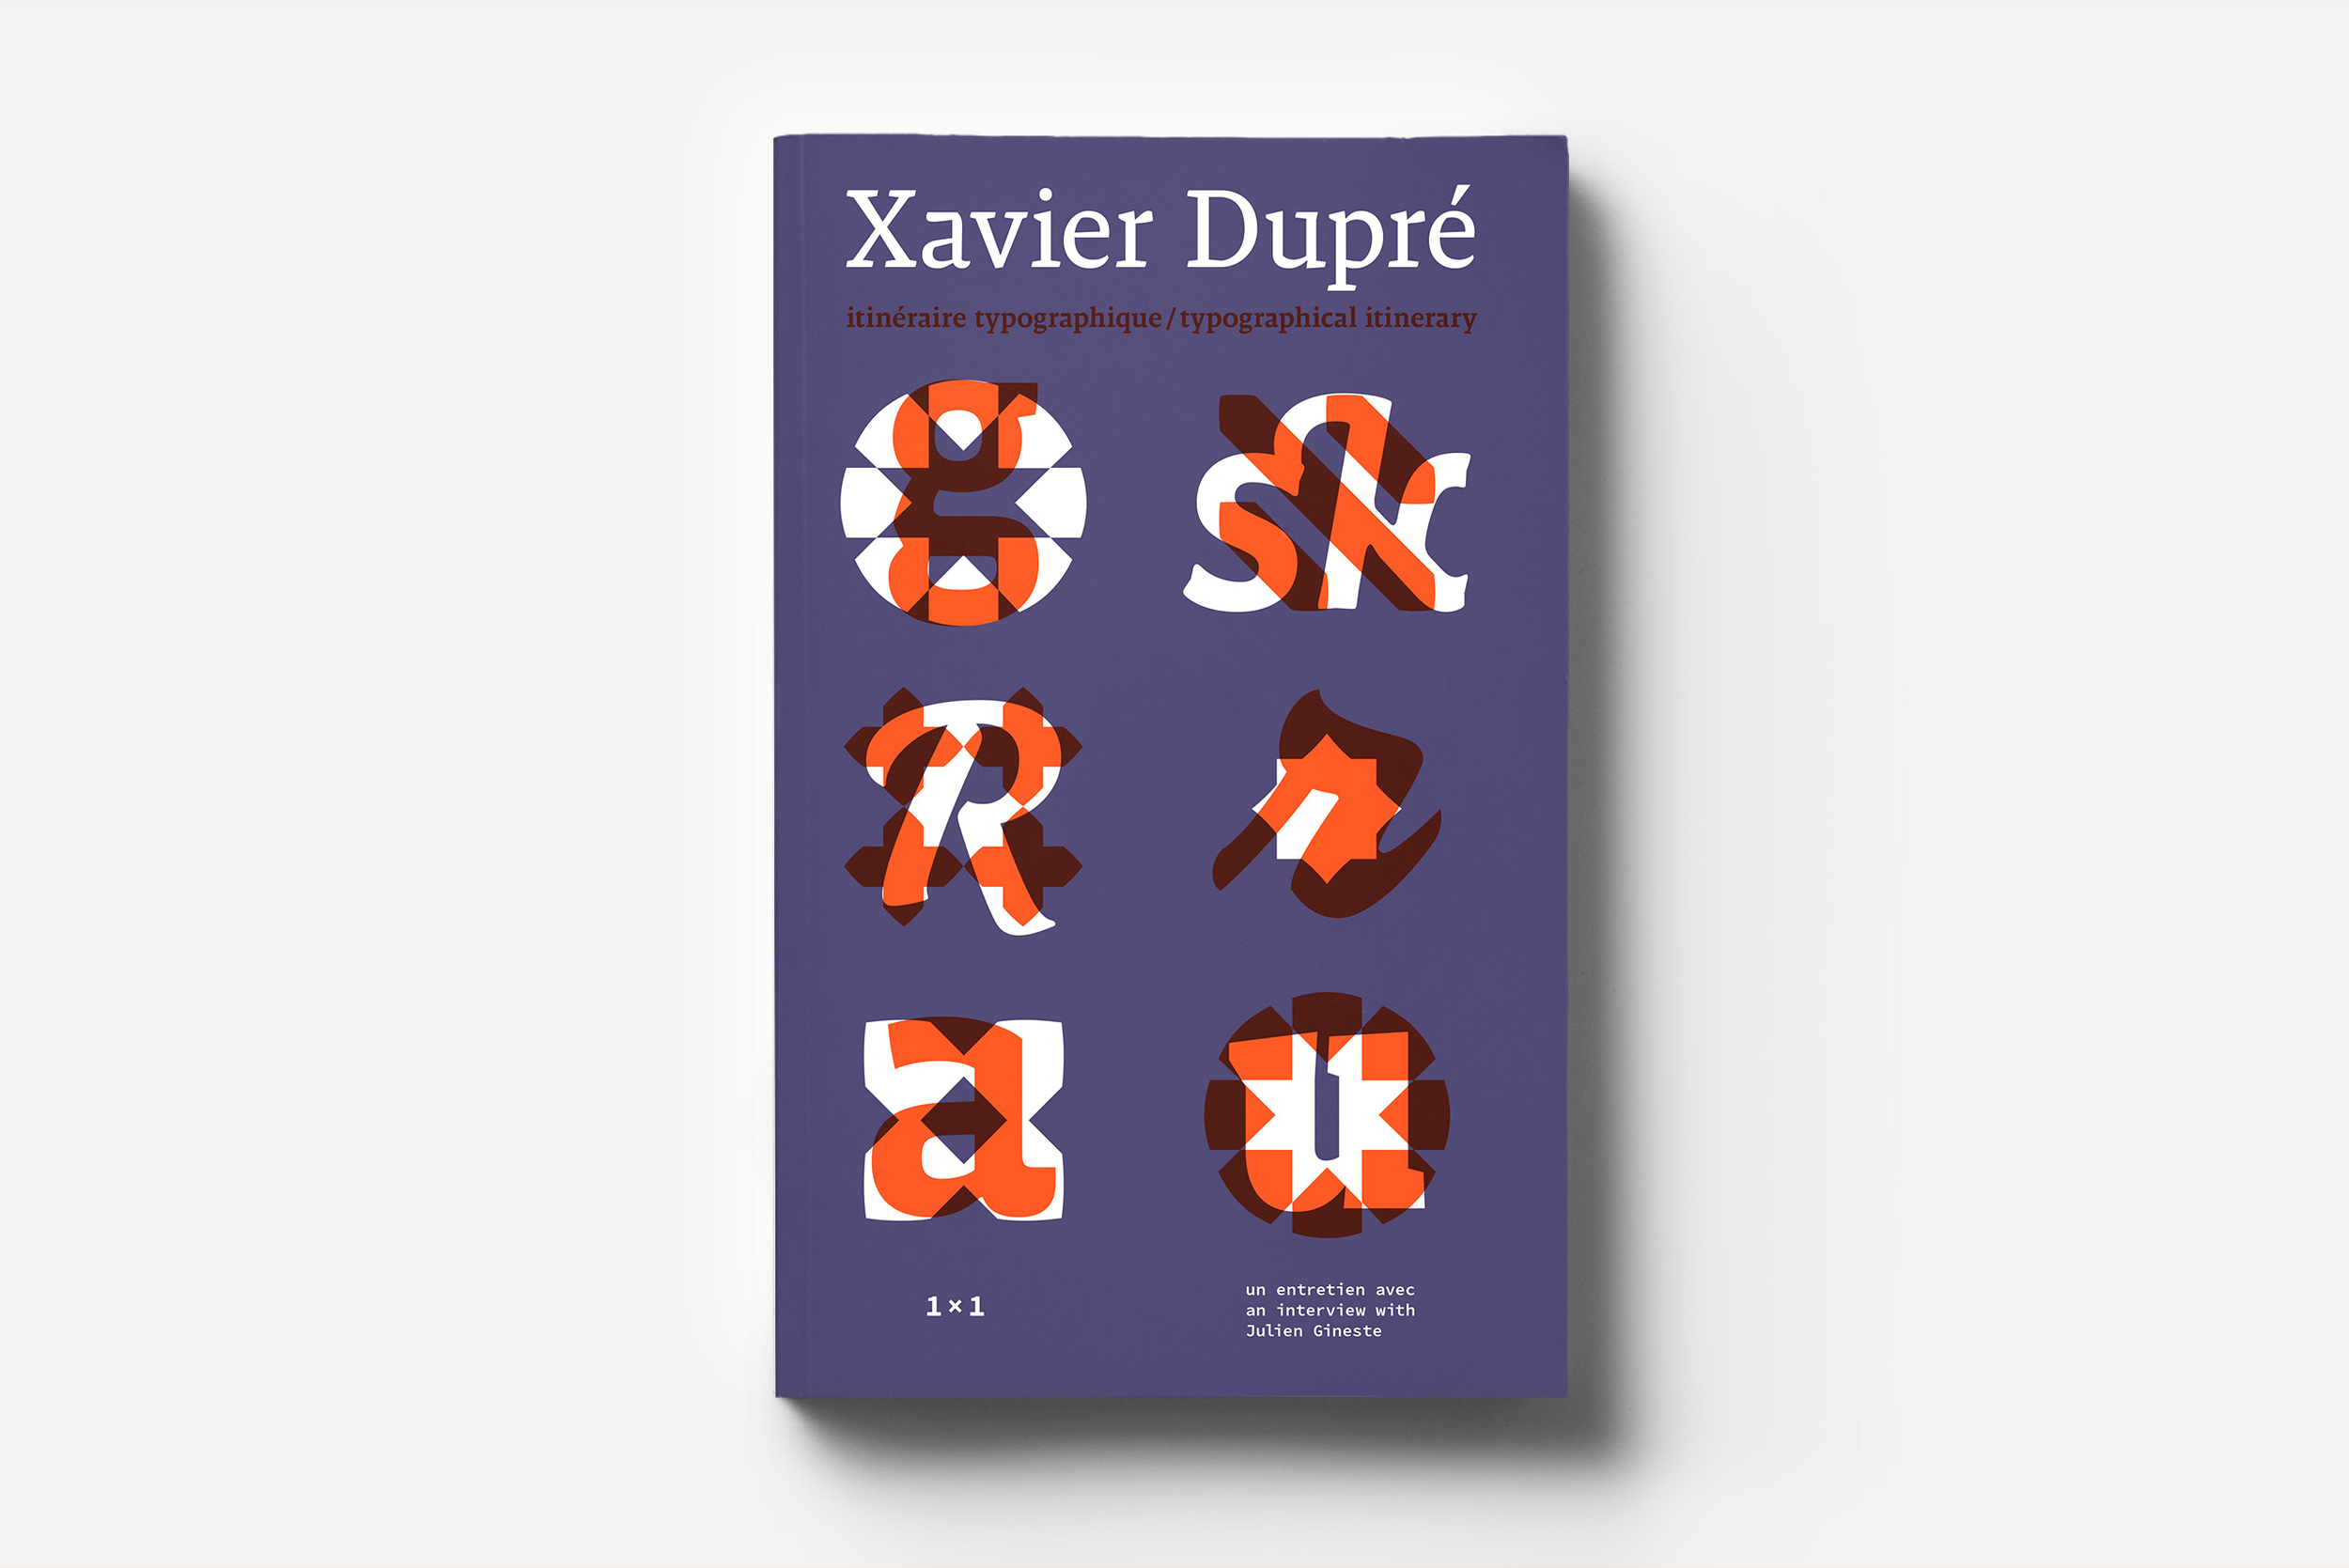 Xavier Dupré, itinéraire typographique / typographical itinerary